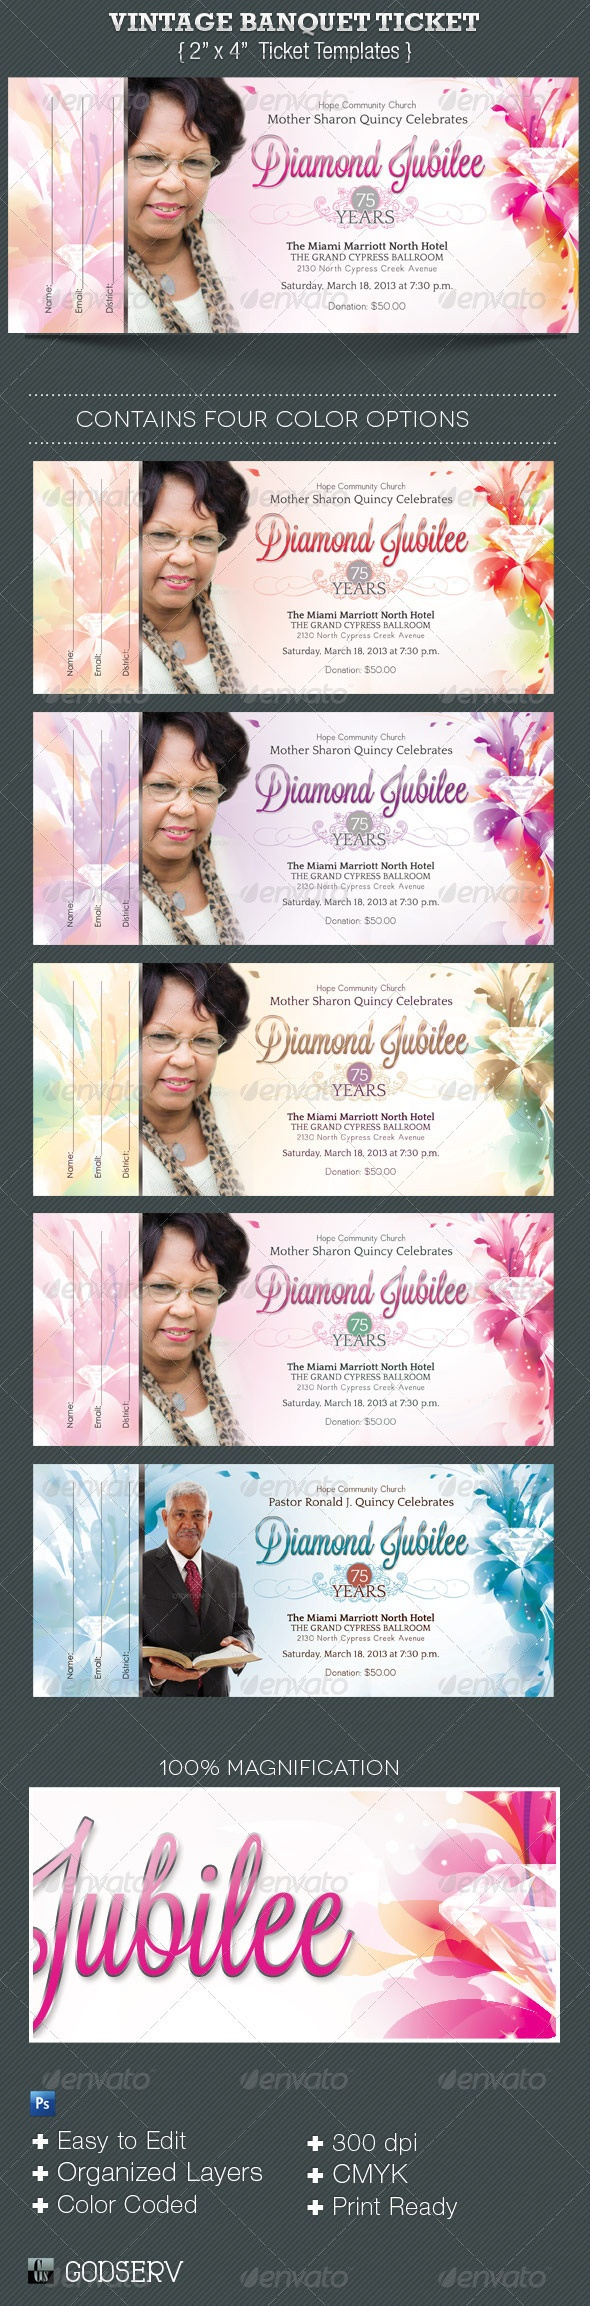 best images about ticket designs basketball baby diamond jubilee event ticket template